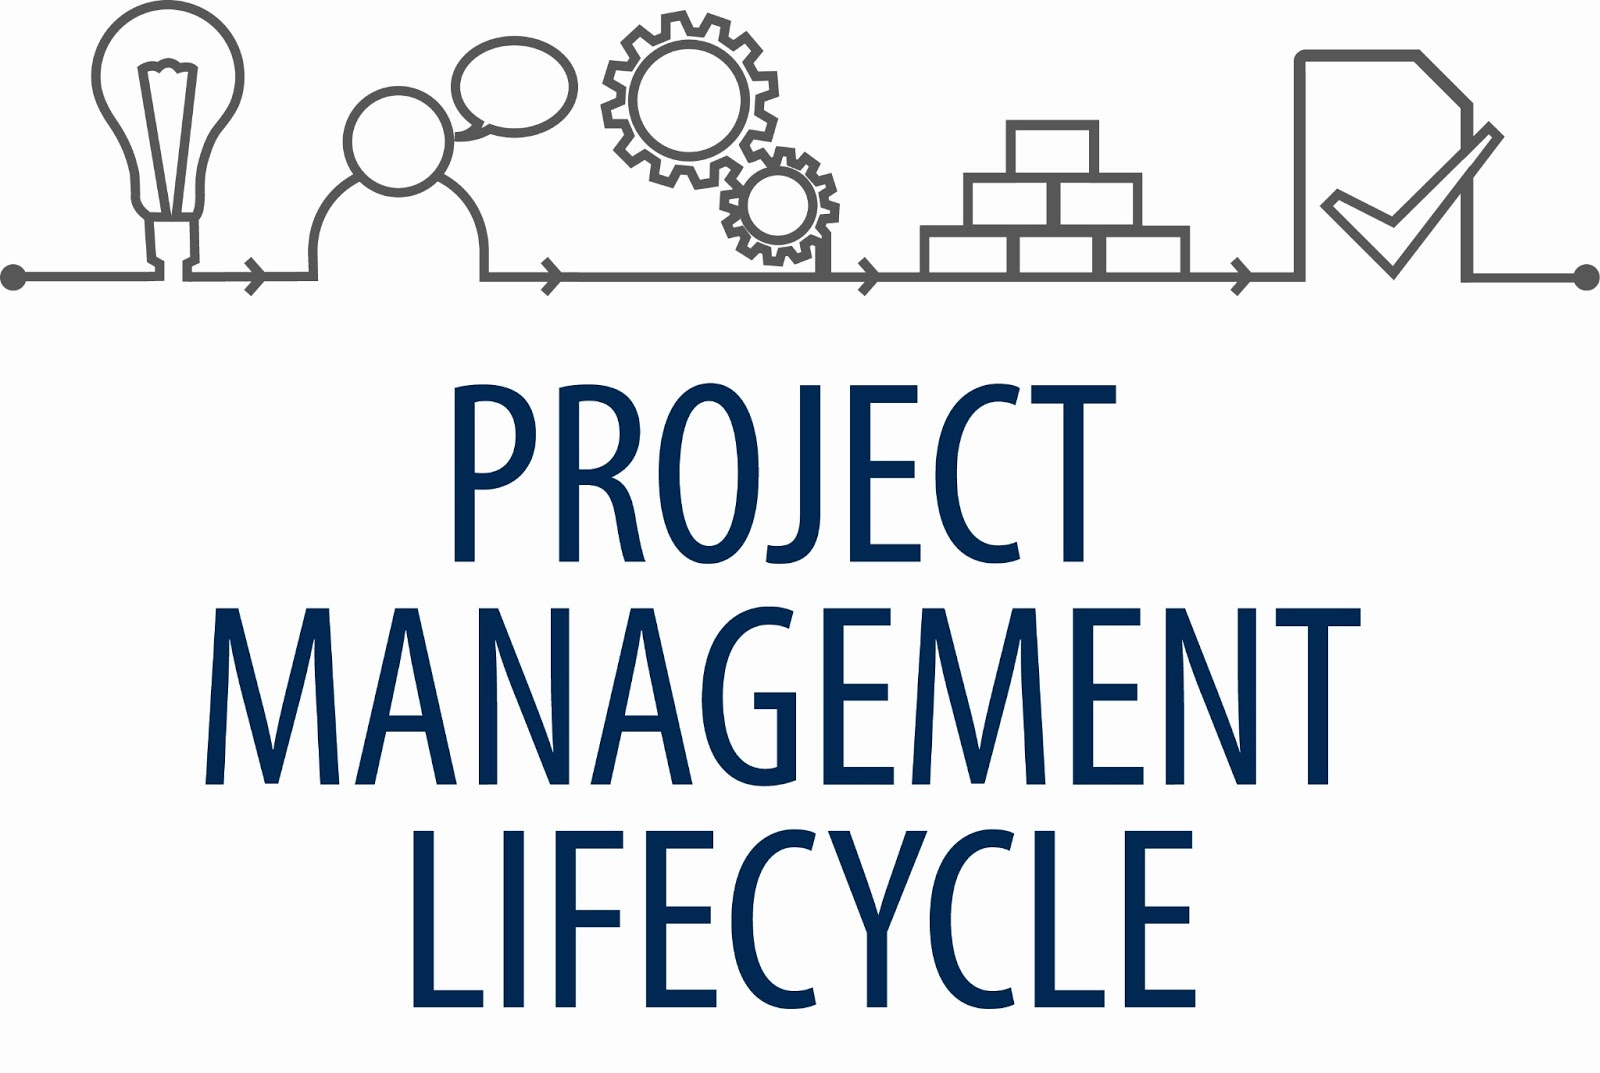 Project Management Logo: CIS1513WINTER.TUES.13.06